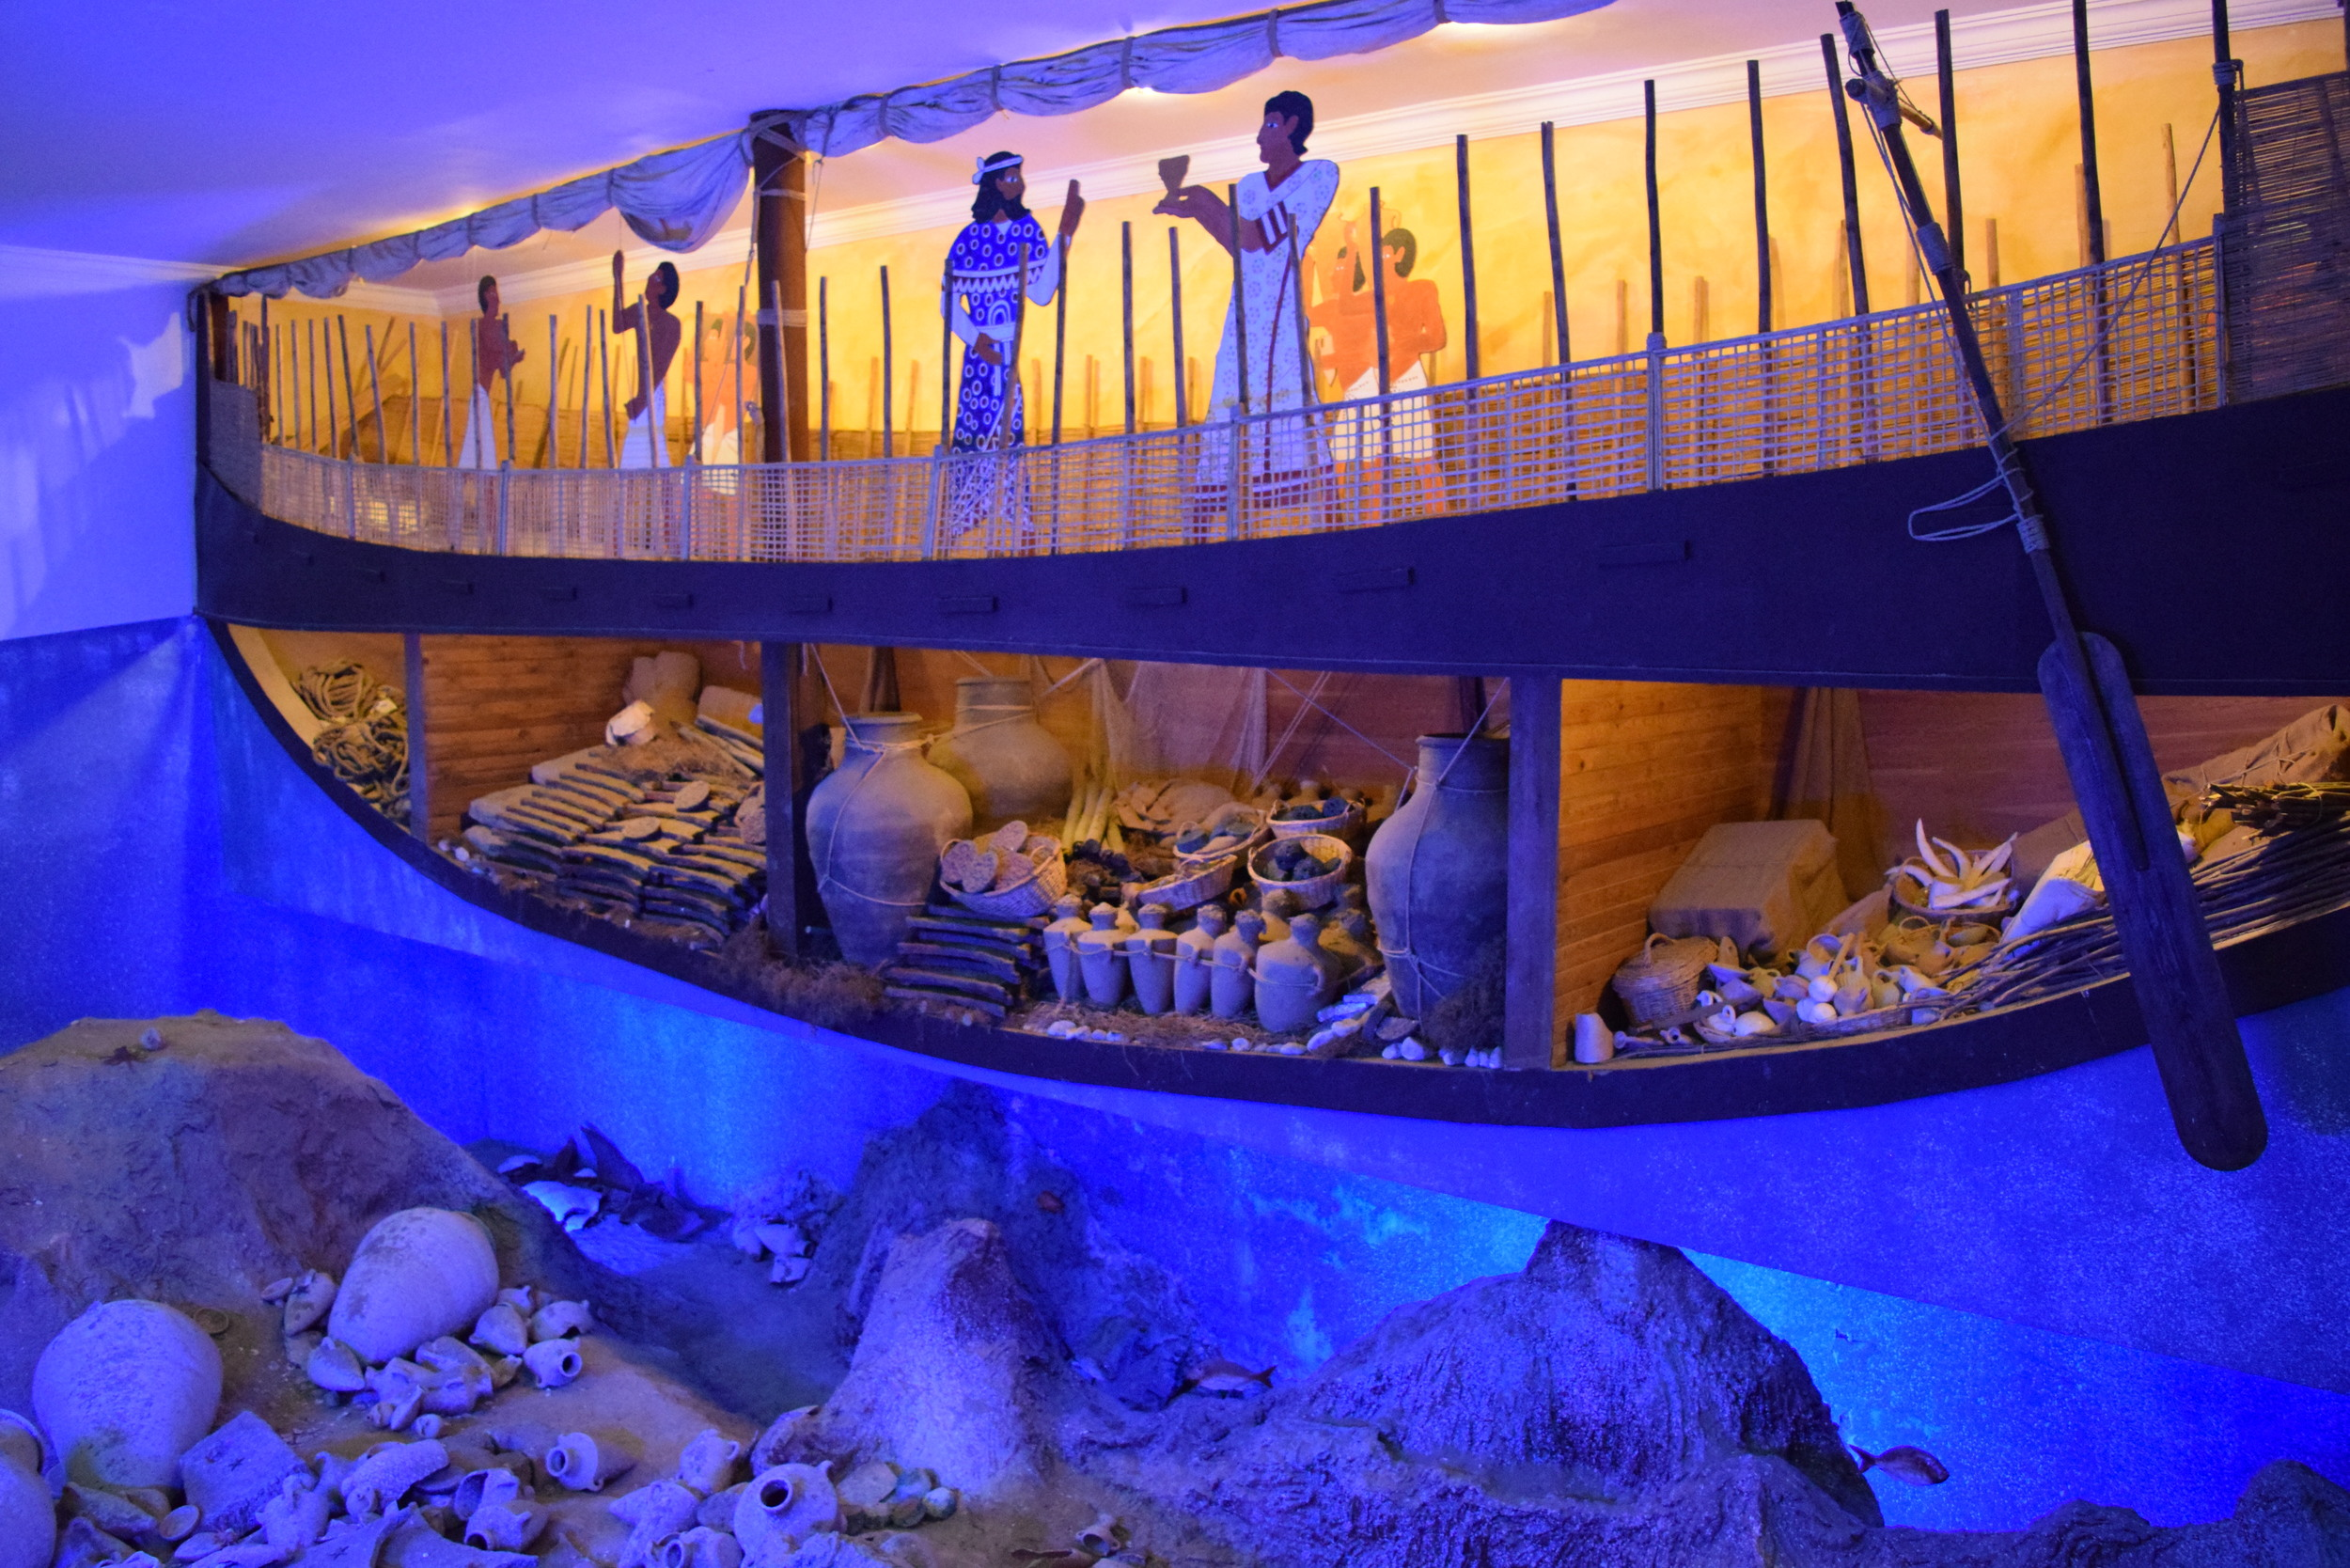 A display from the Underwater Archaeology Museum